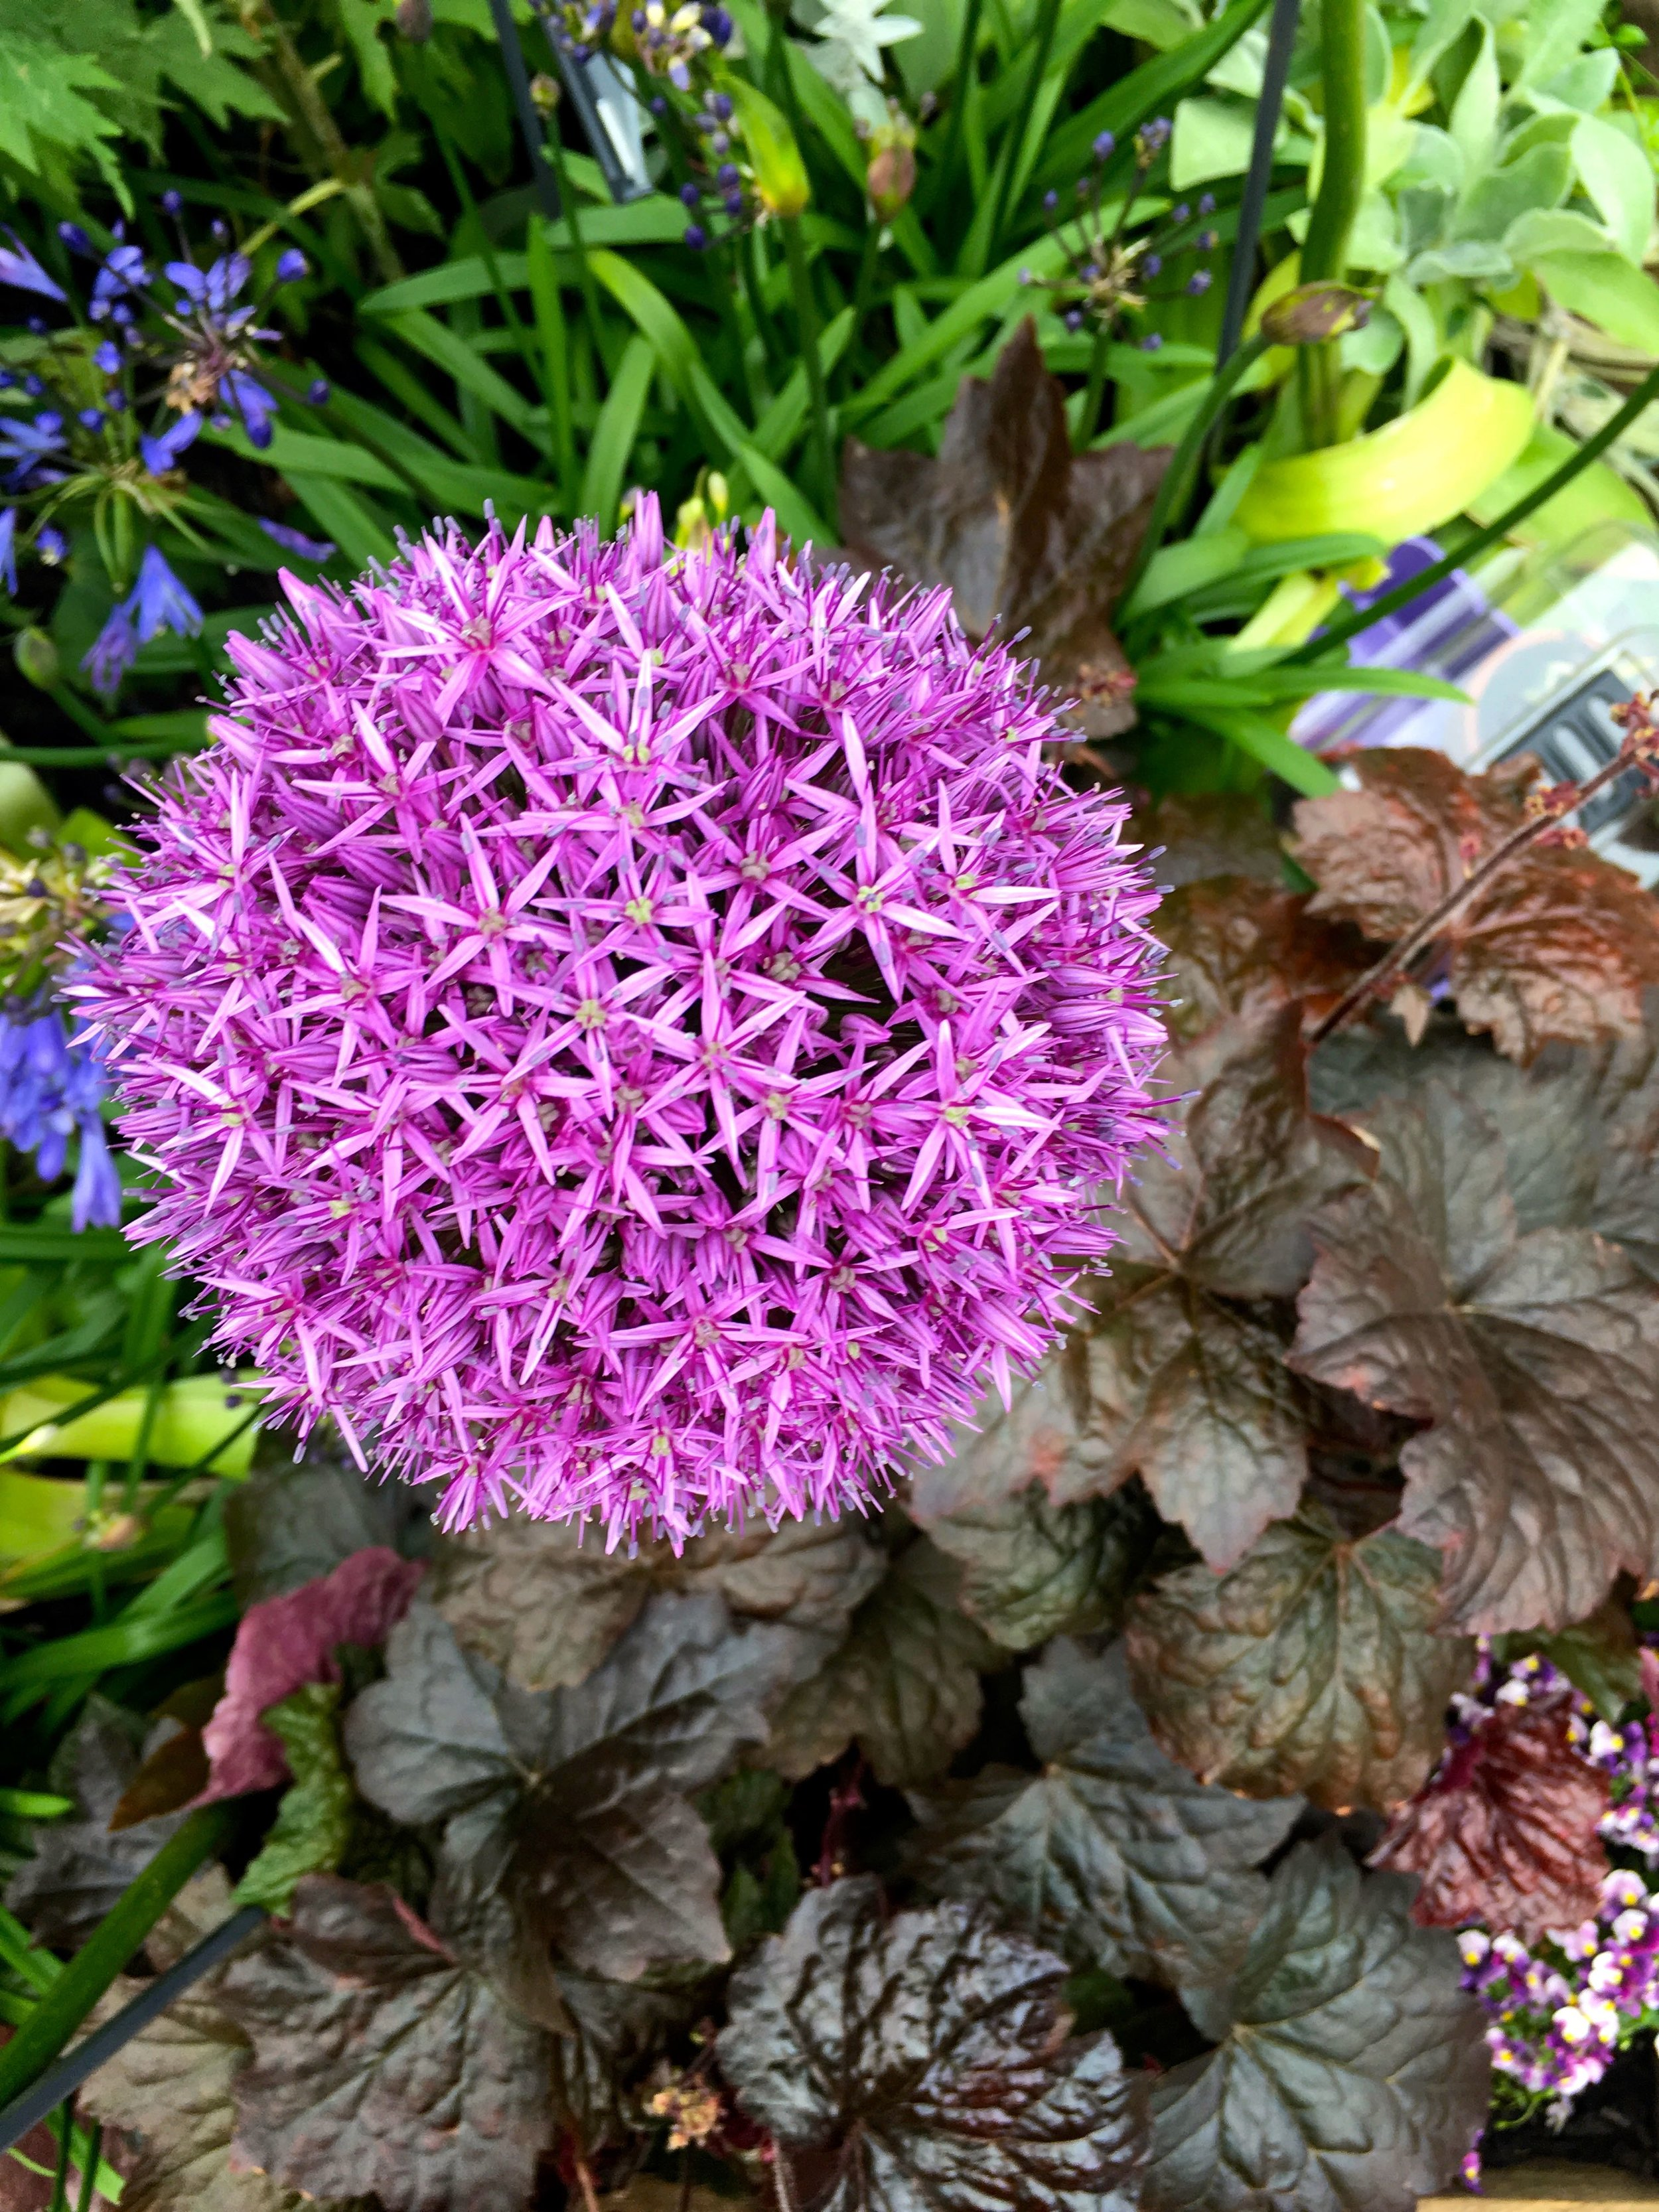 the vibrancy of an allium against the dark leaves of the heuchera